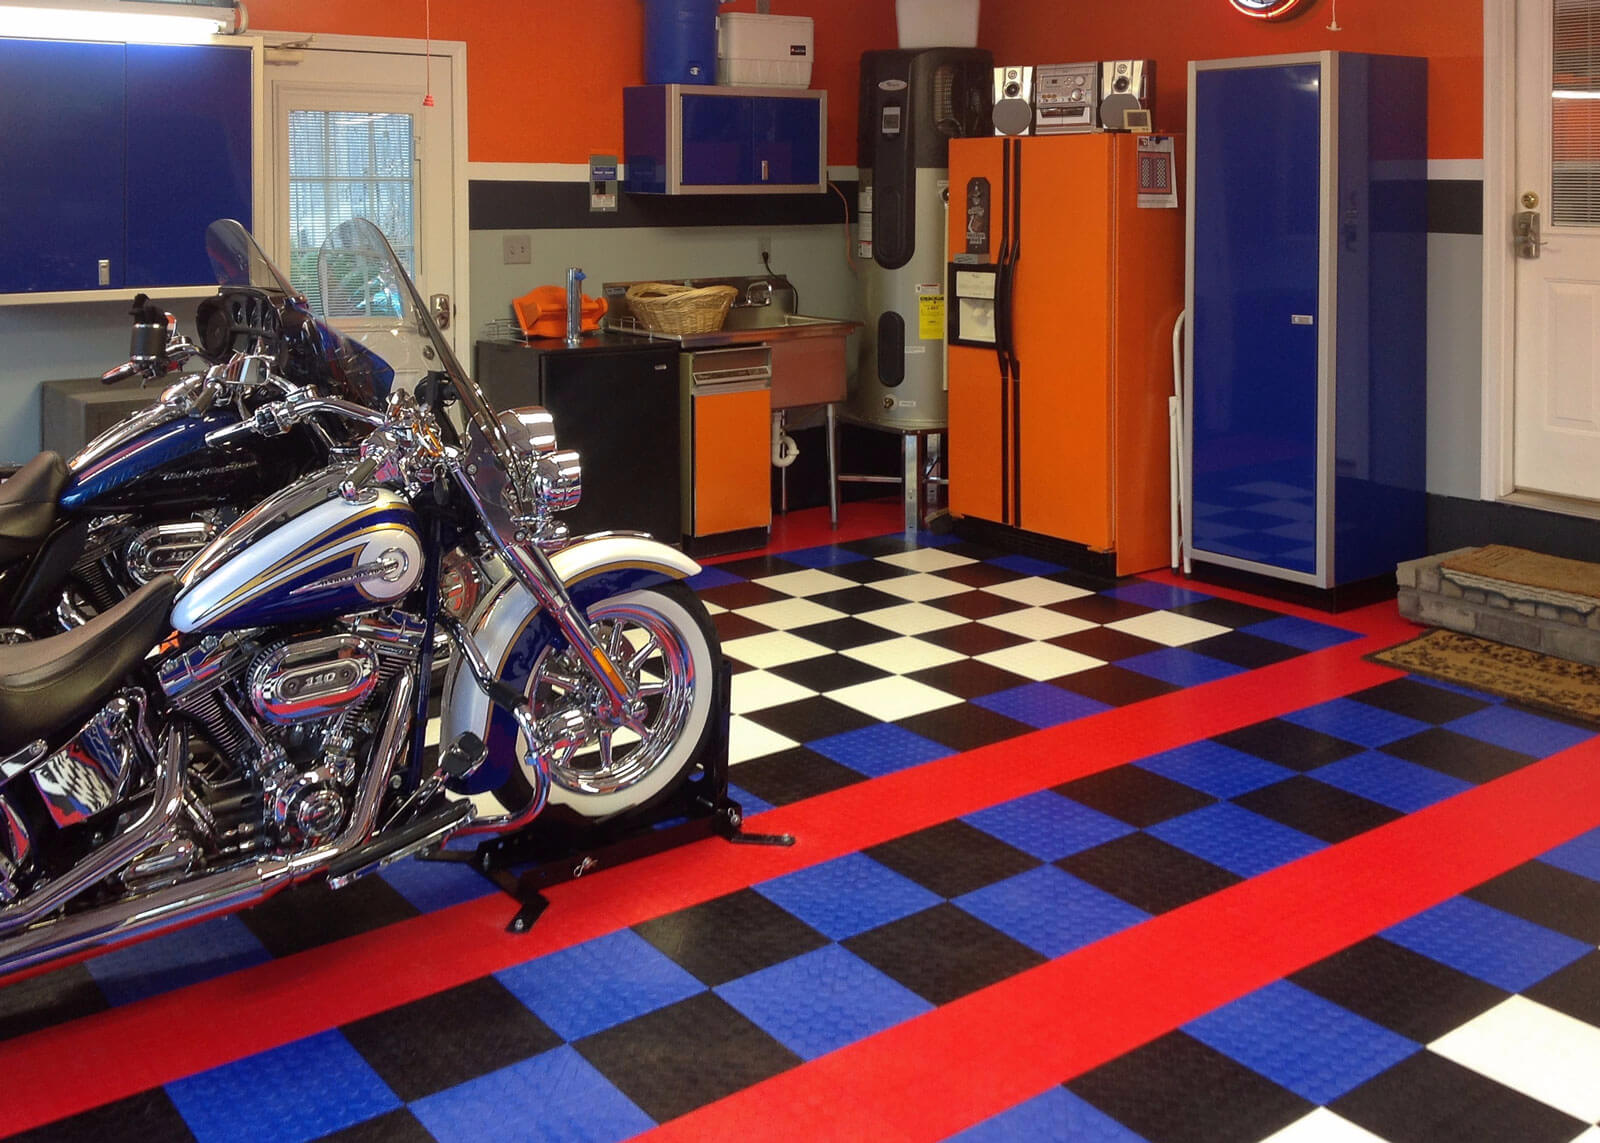 Two Harleys in a home garage with CircleTrac coin-top flooring.